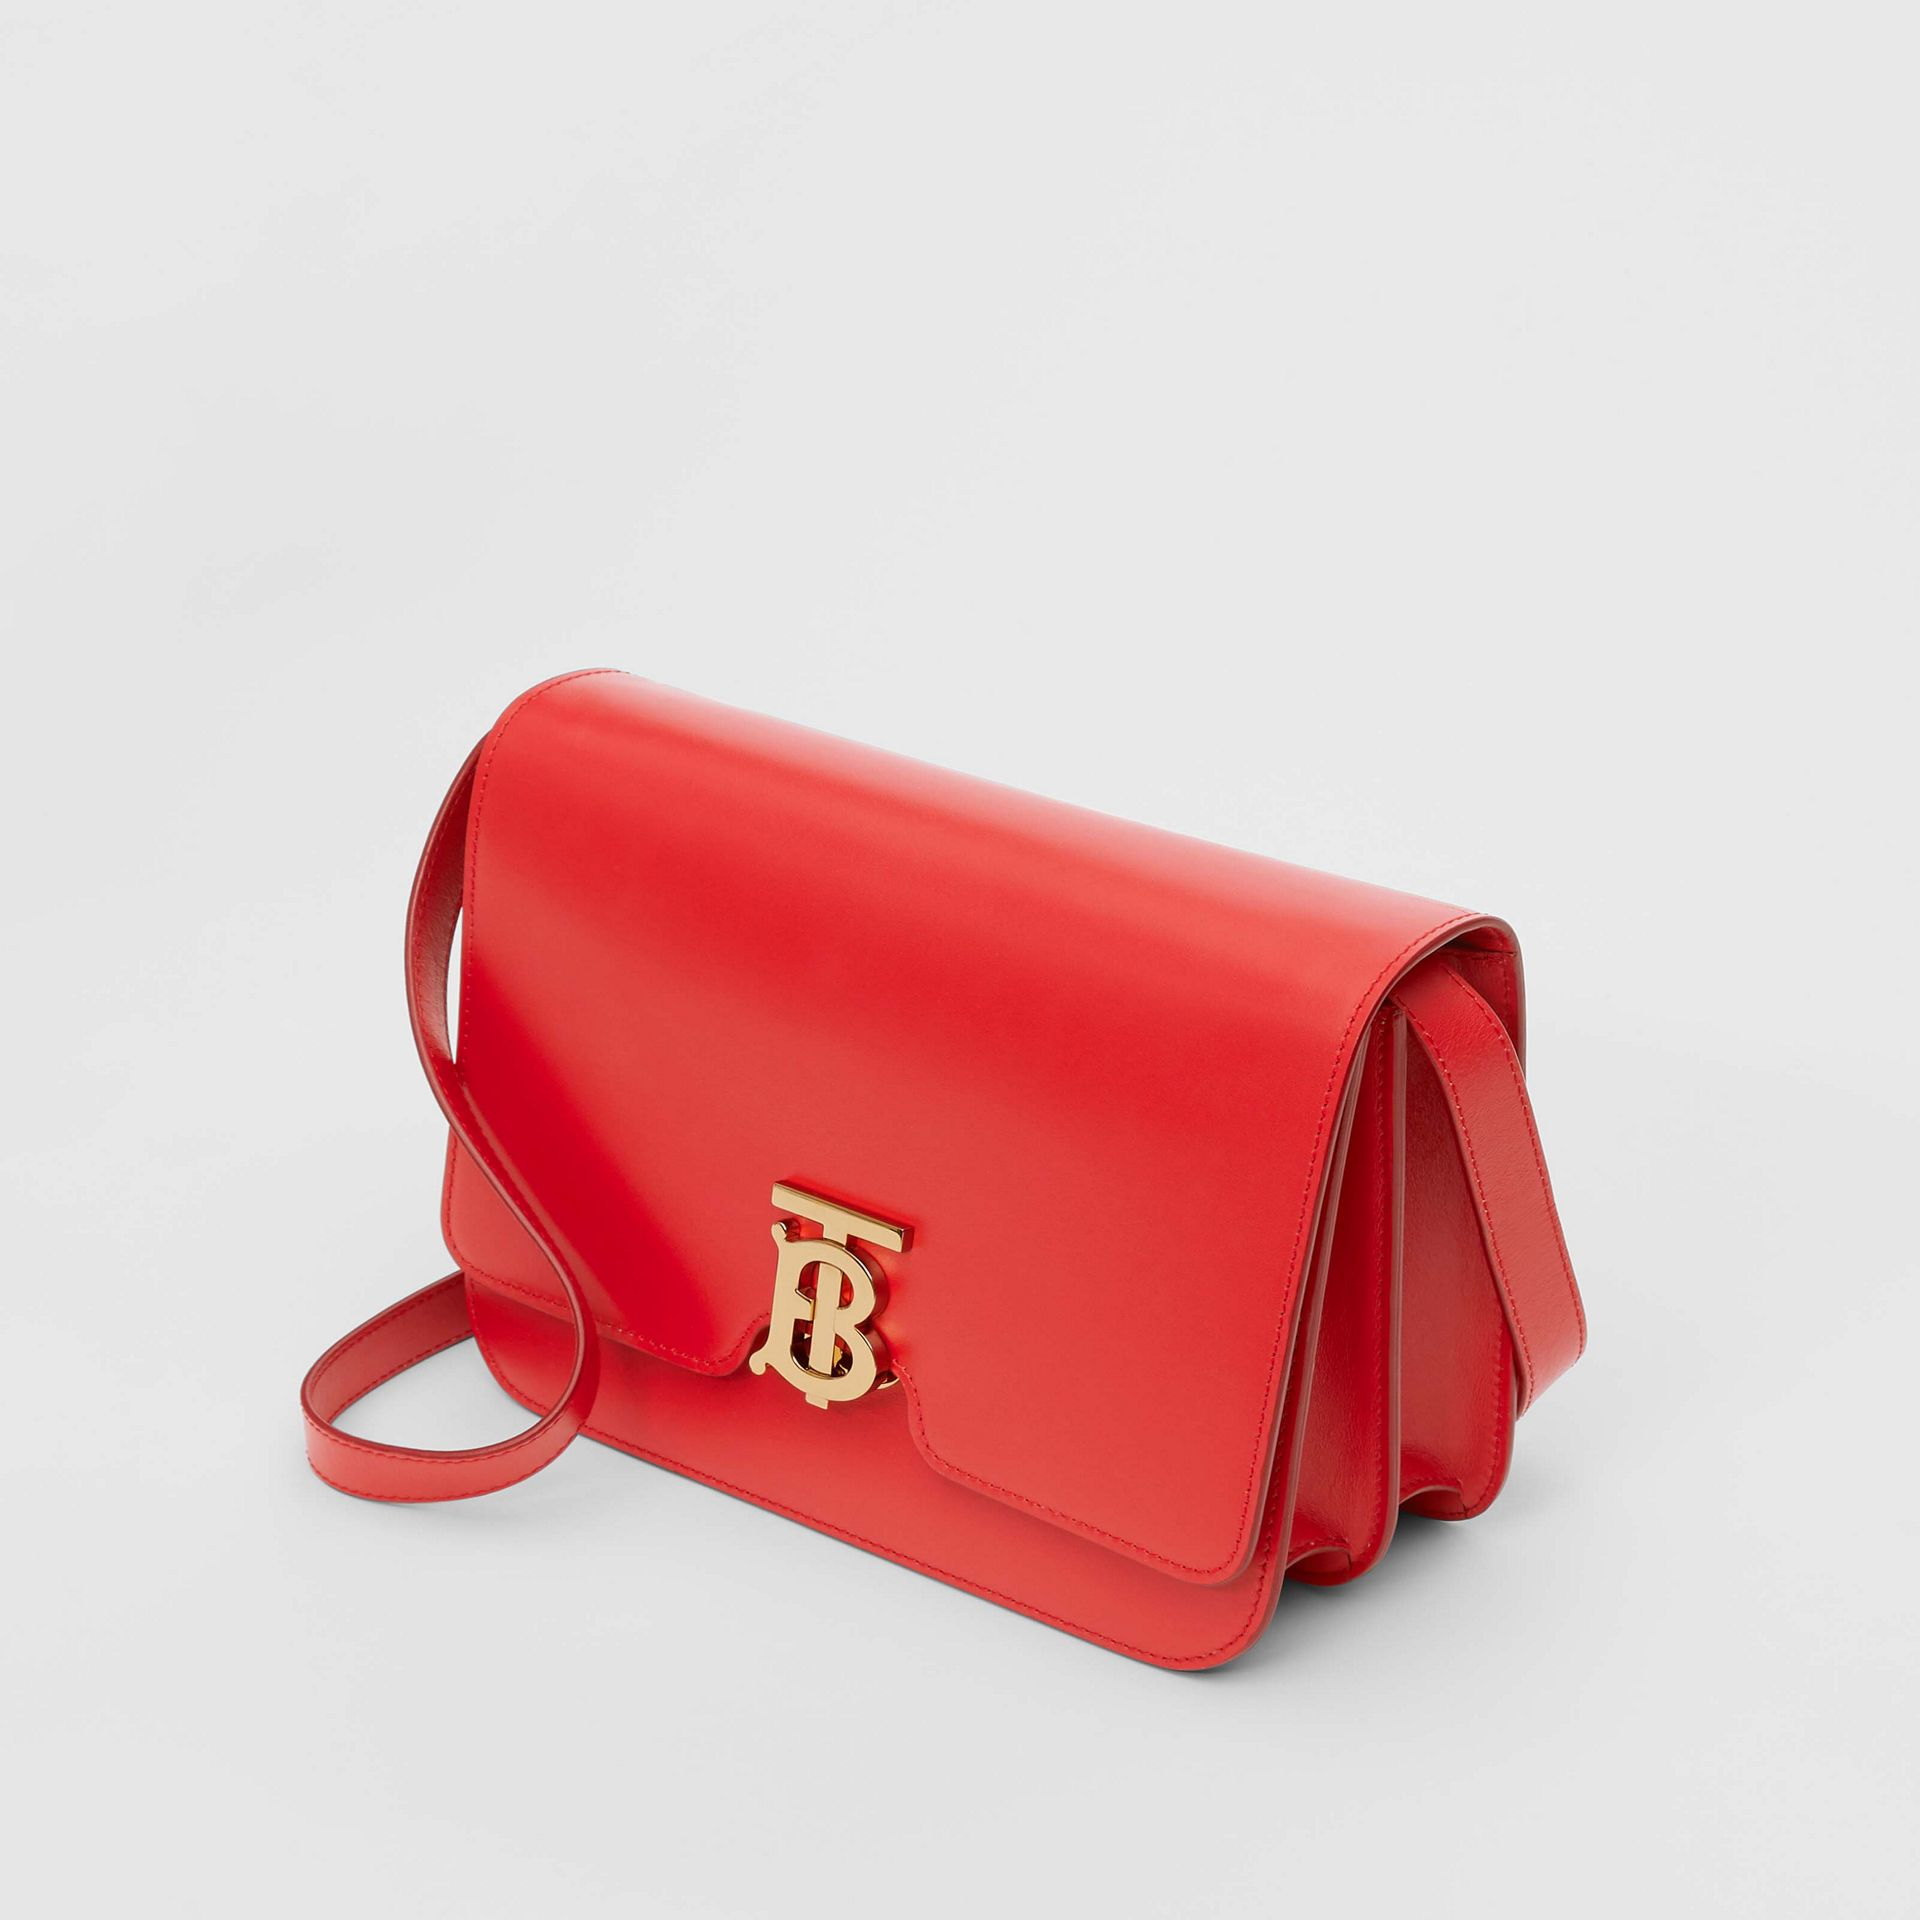 Medium Leather TB Bag in Bright Red - Women | Burberry - gallery image 3